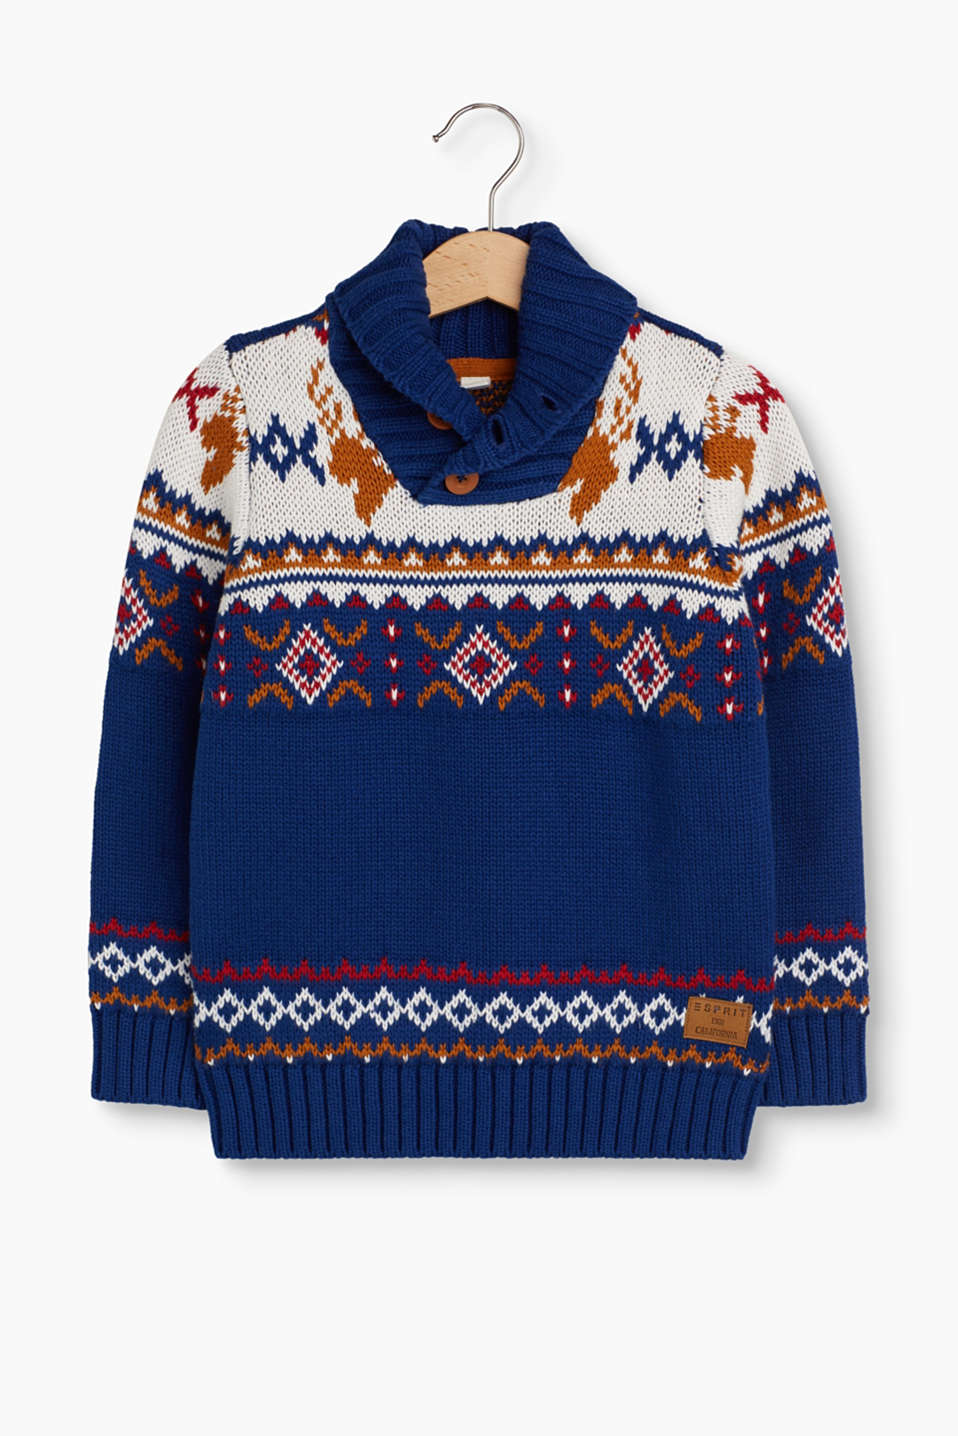 A cosy favourite piece, this warm cotton jumper features a colourful intarsia pattern and a shawl collar.